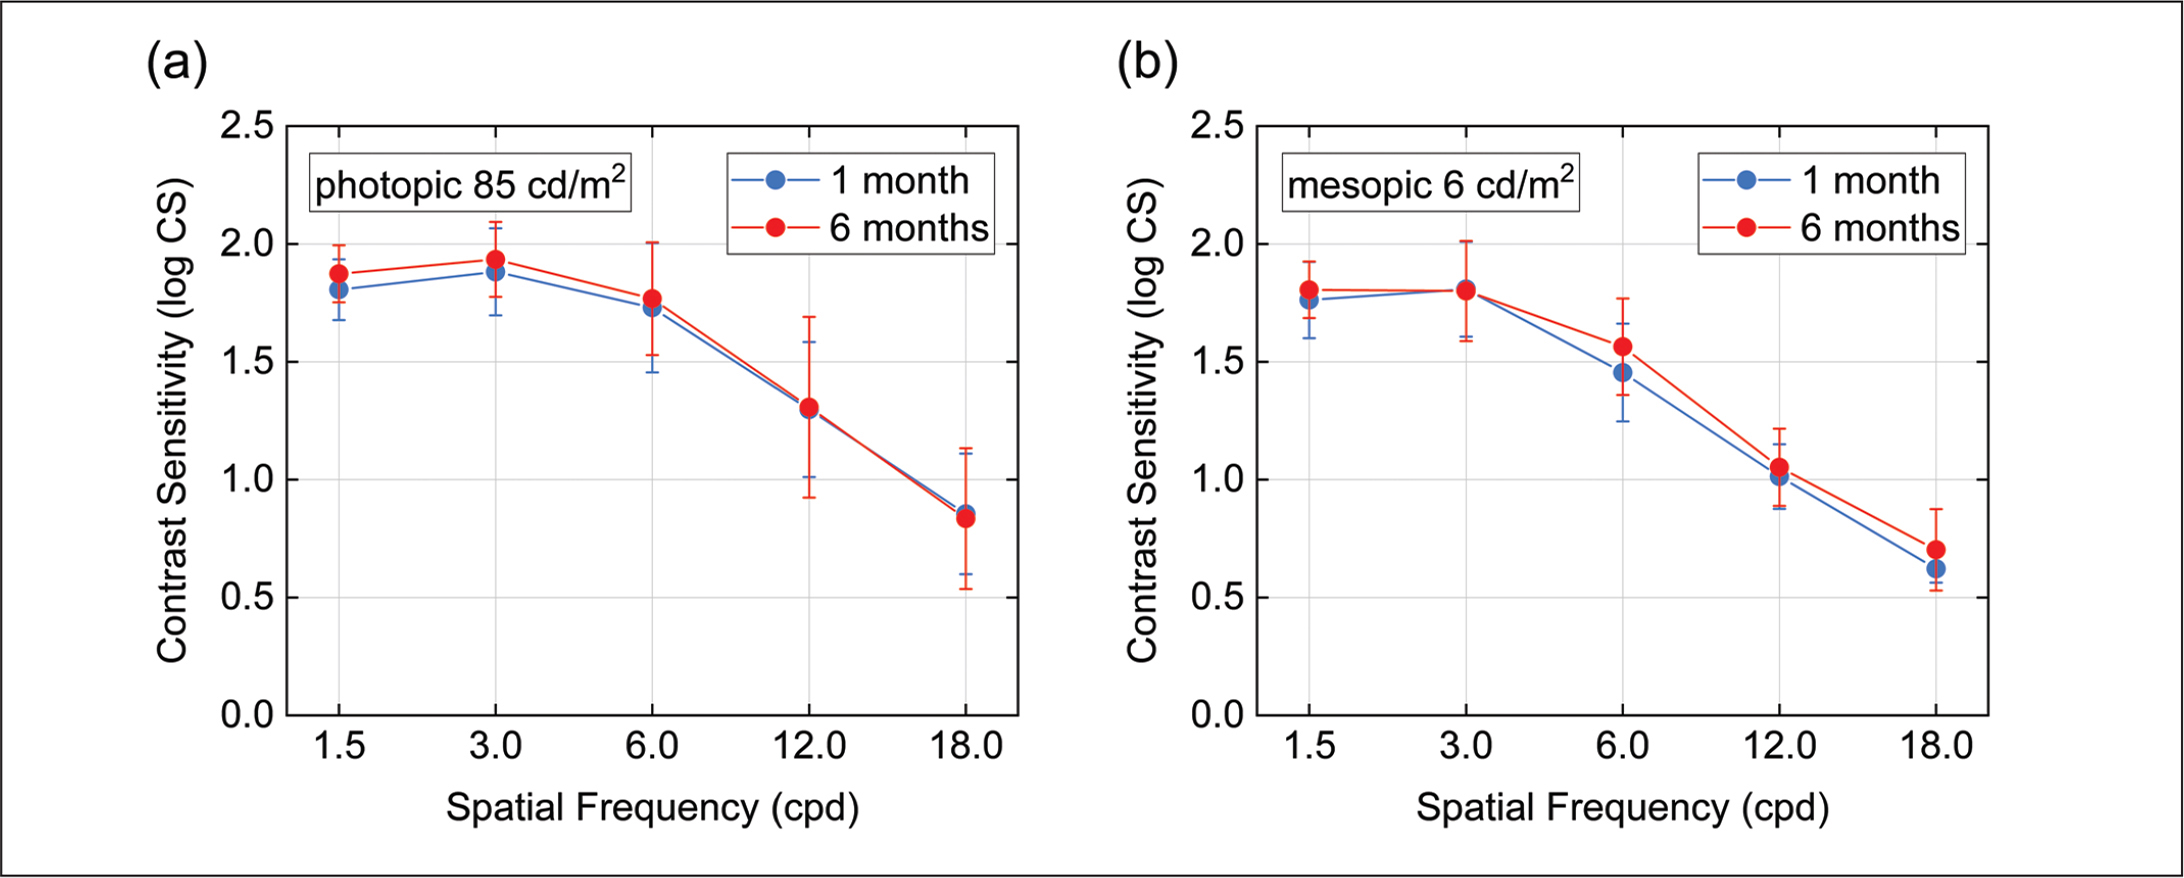 Mean (A) photopic and (B) mesopic contrast sensitivity for different spatial frequencies measured at 1 and 6 months postoperatively. cpd = cycles per degree